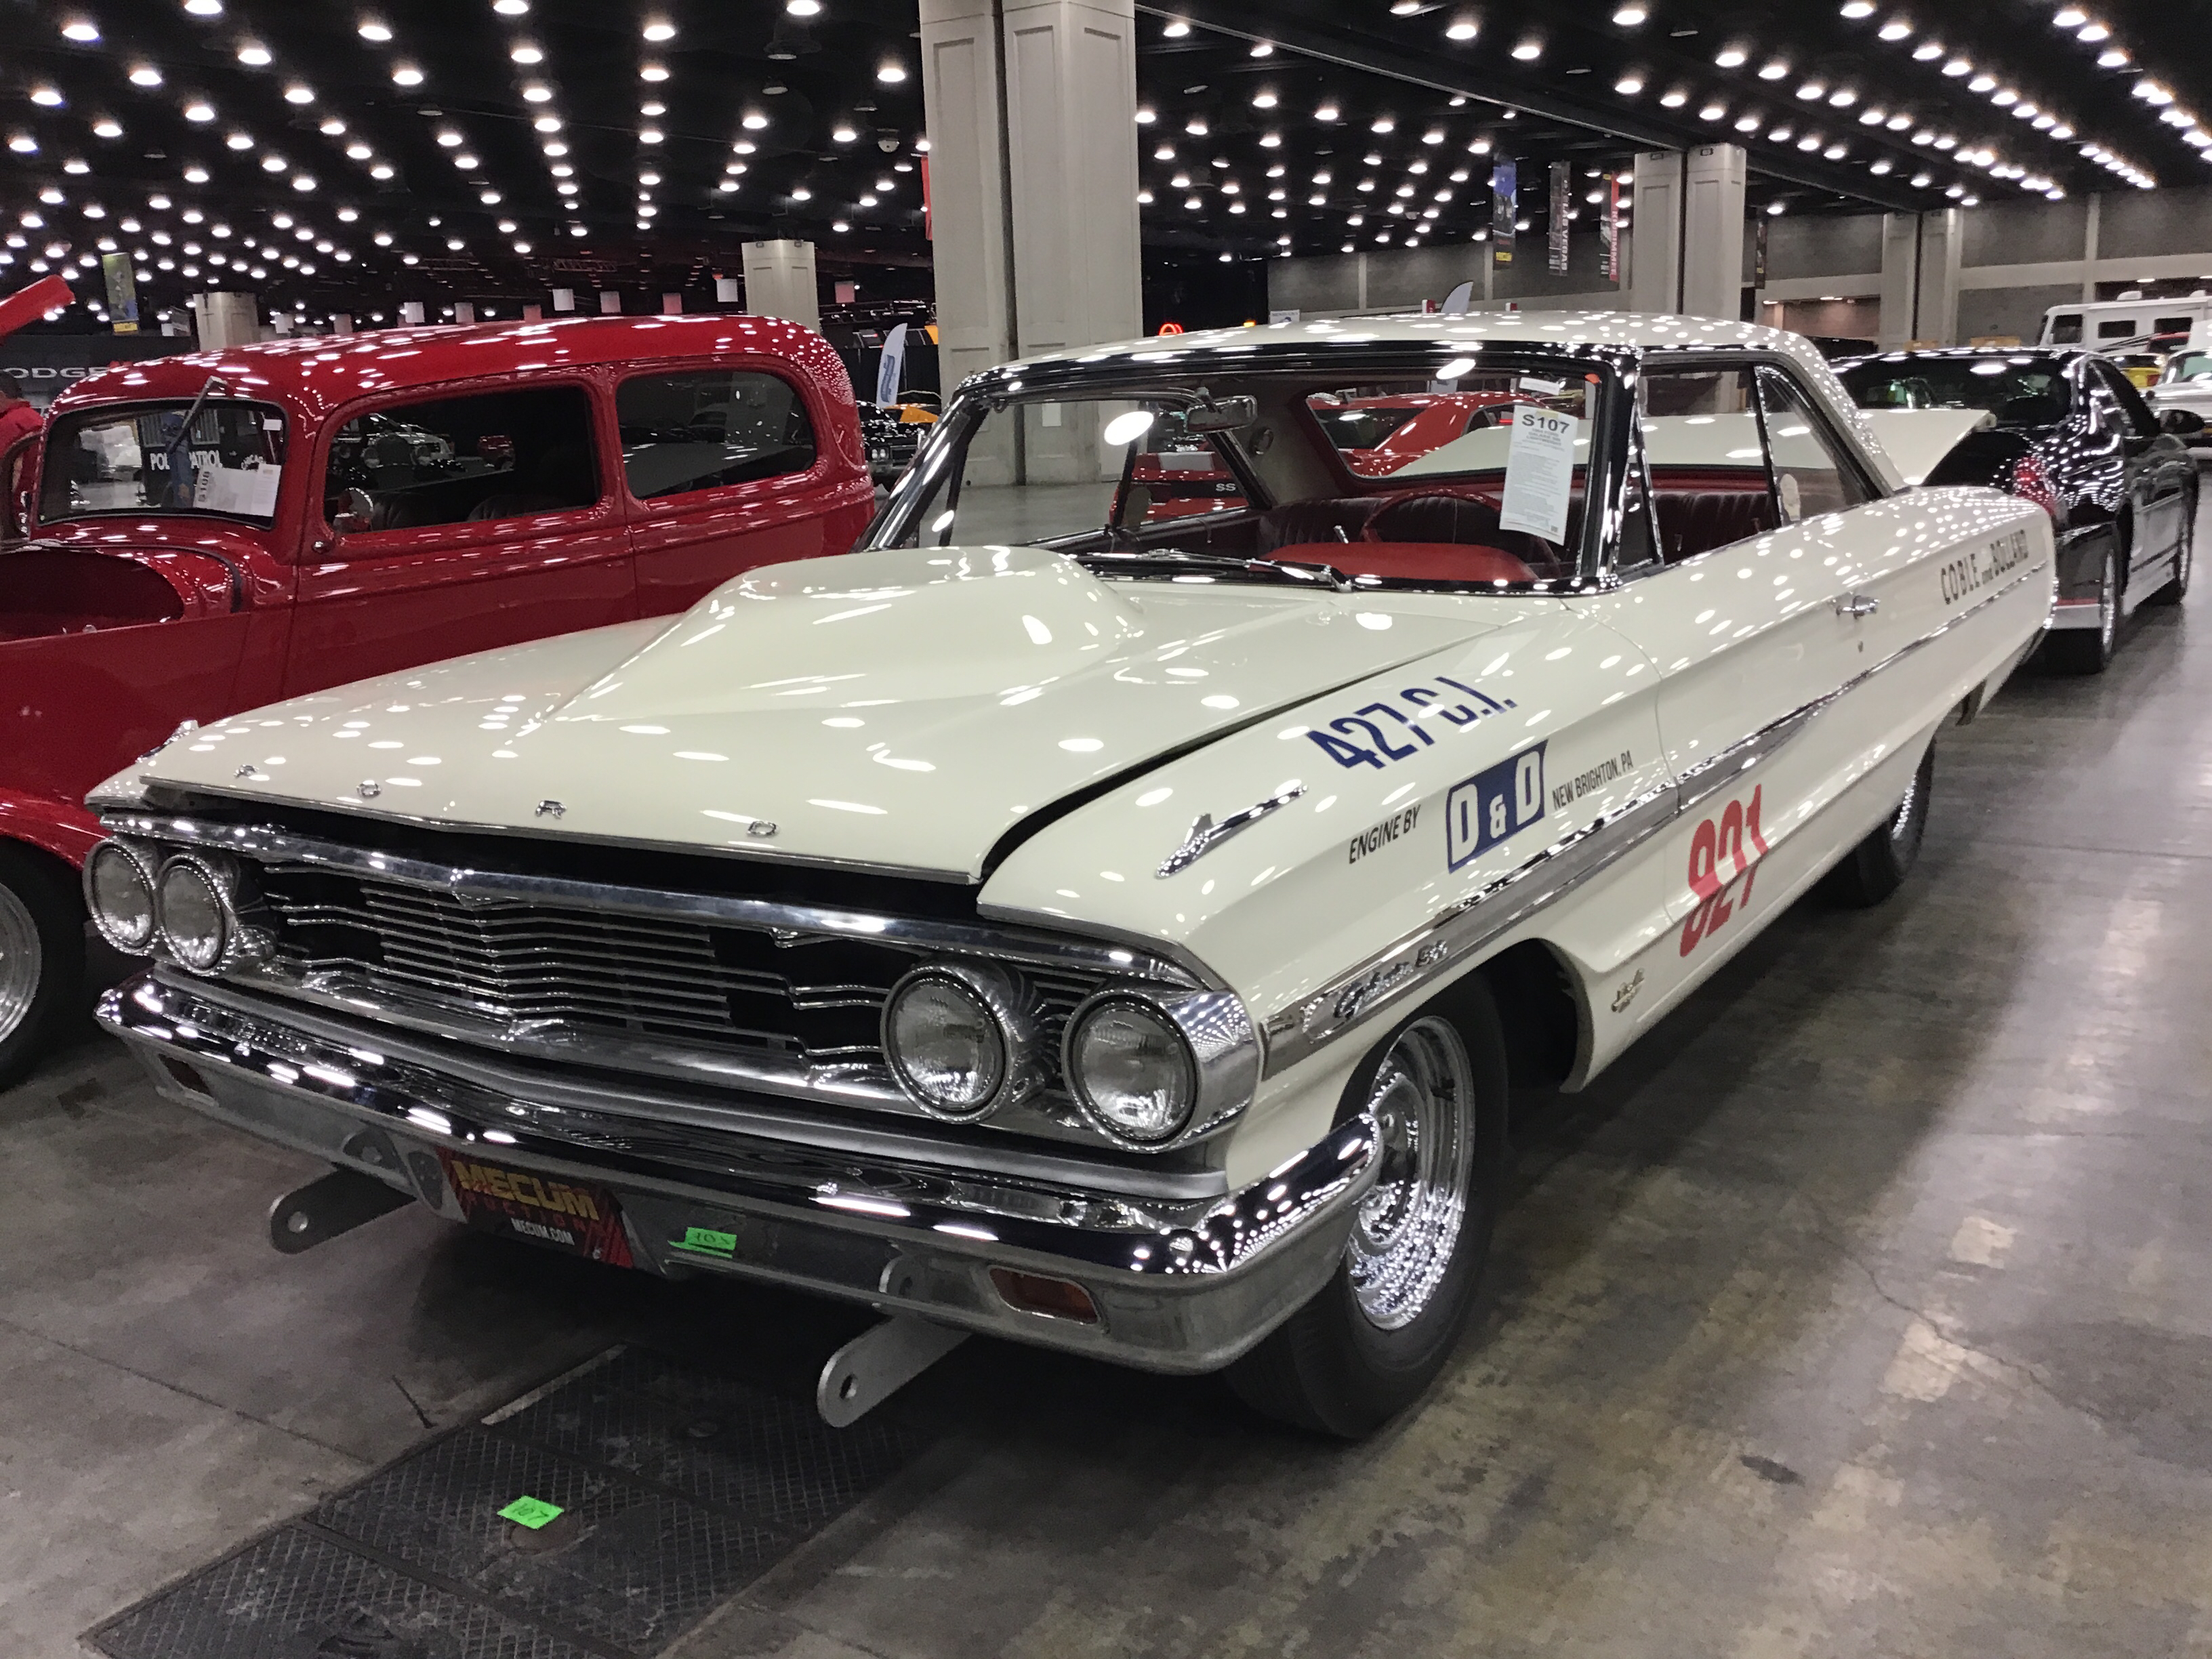 1964 Ford Galaxie 500 Values   Hagerty Valuation Tool®